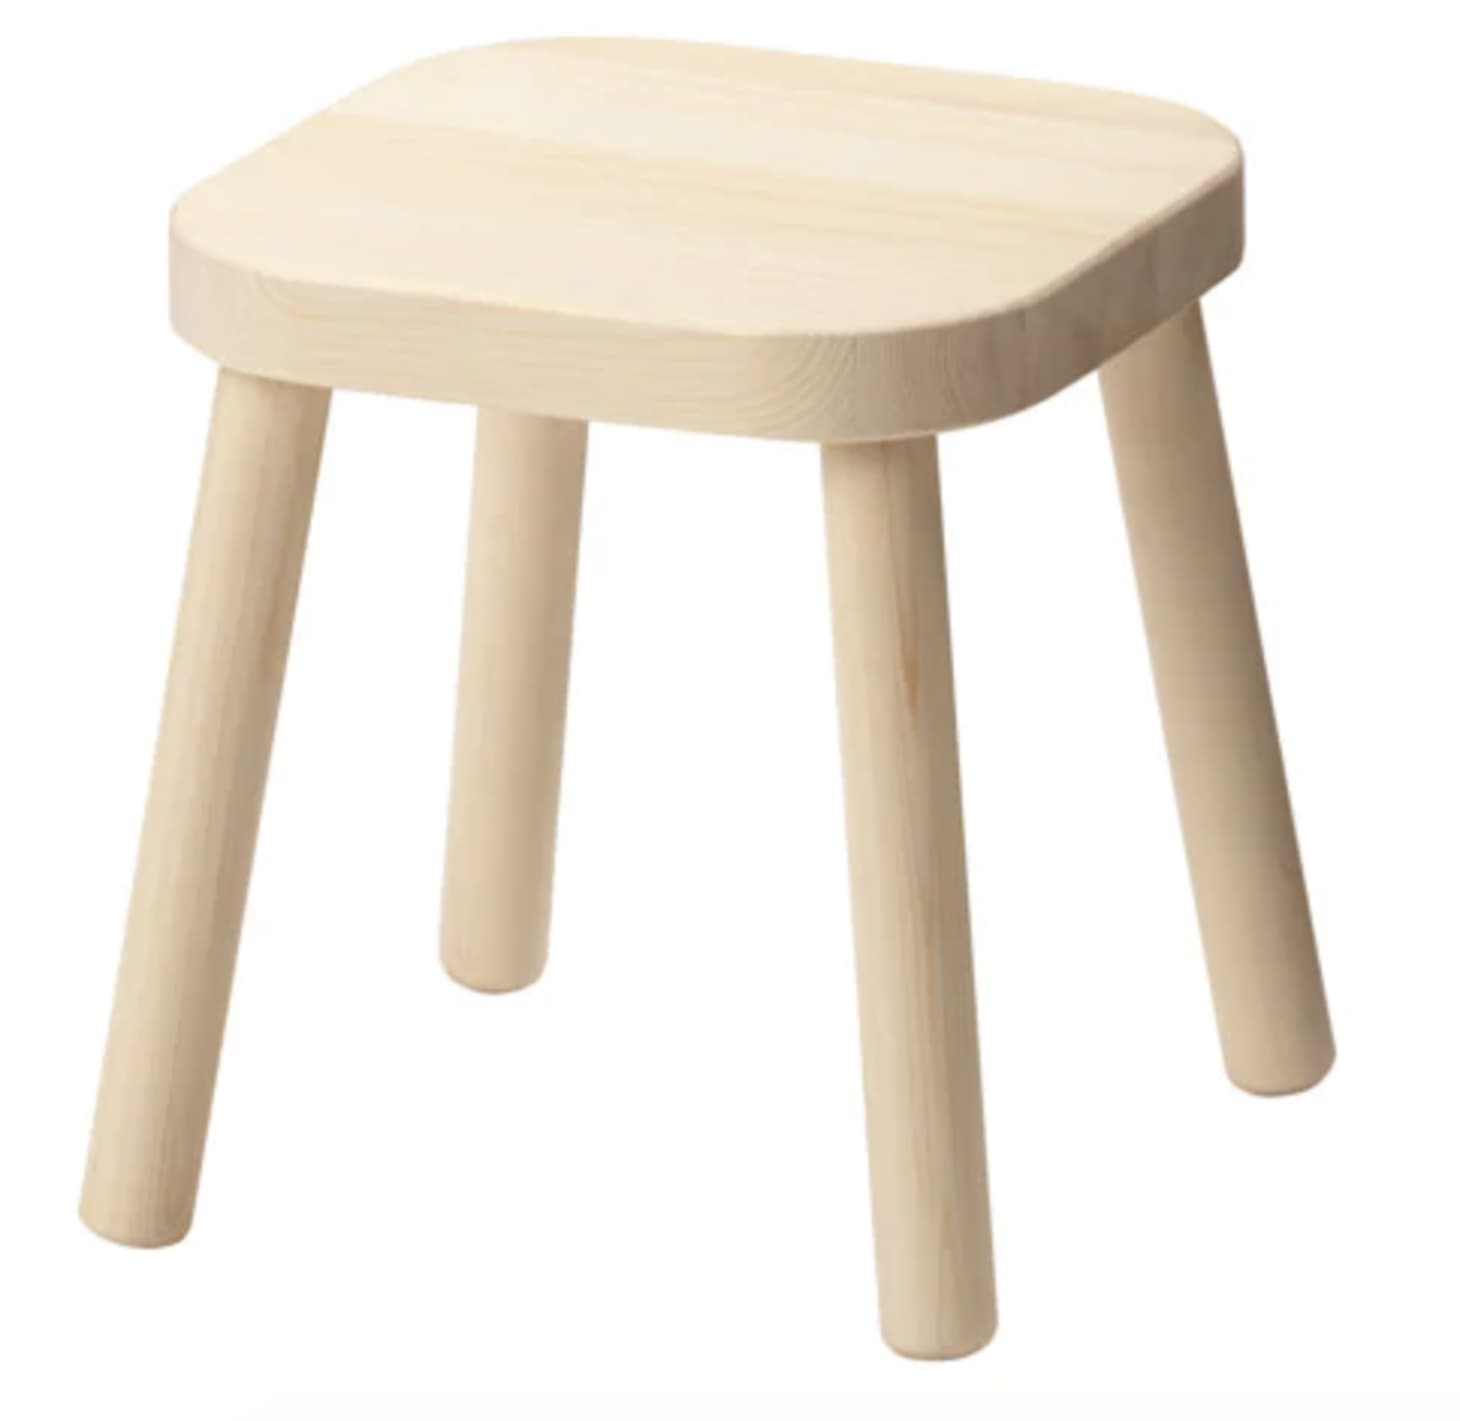 Fantastic Ikea Childrens Items For The Kitchen Kitchn Dailytribune Chair Design For Home Dailytribuneorg